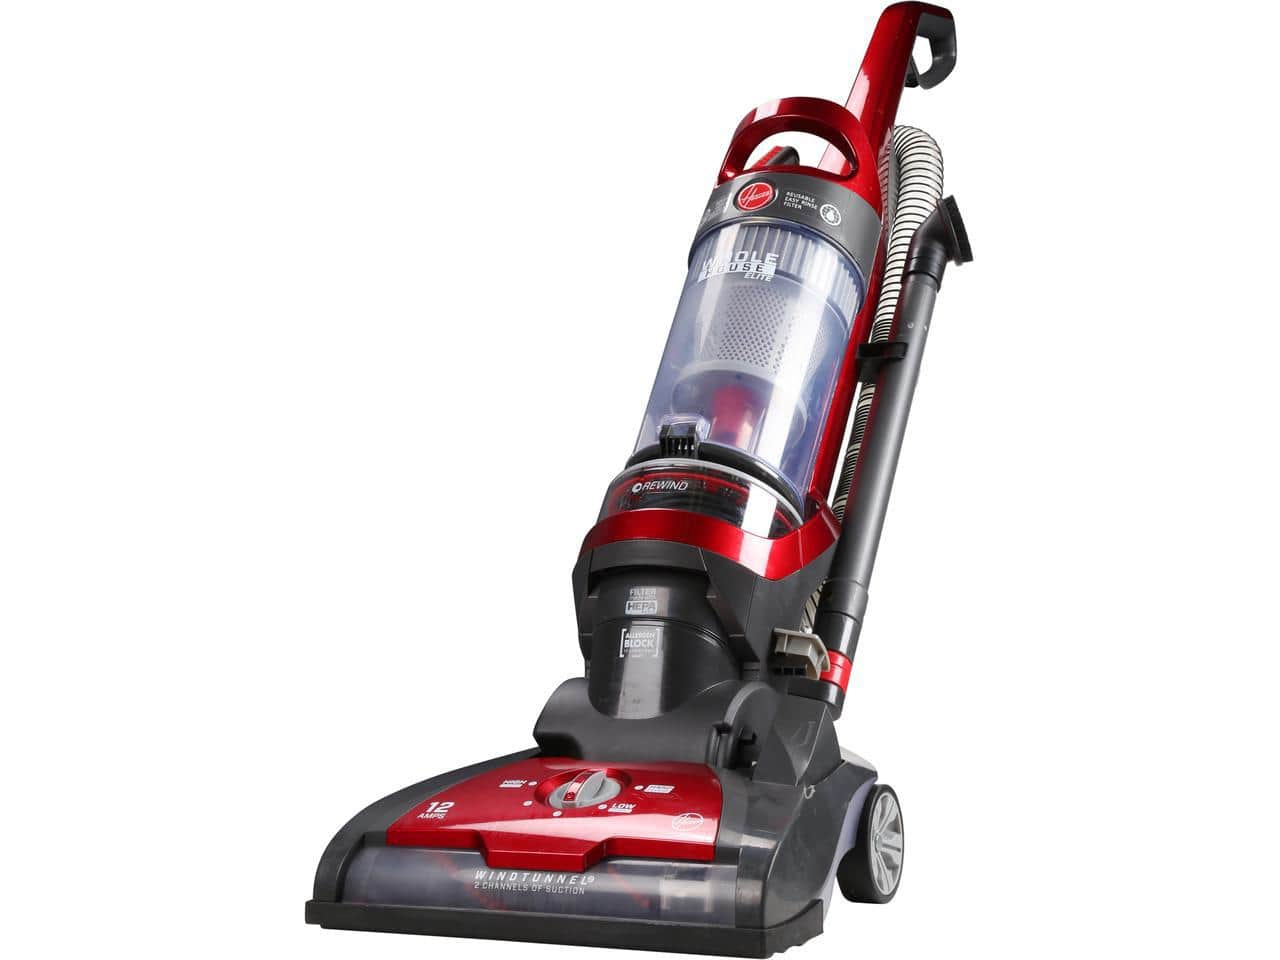 REFURBISHED  Hoover Whole House Elite Dual-Cyclonic Bagless Upright Vacuum Cleaner $44.99